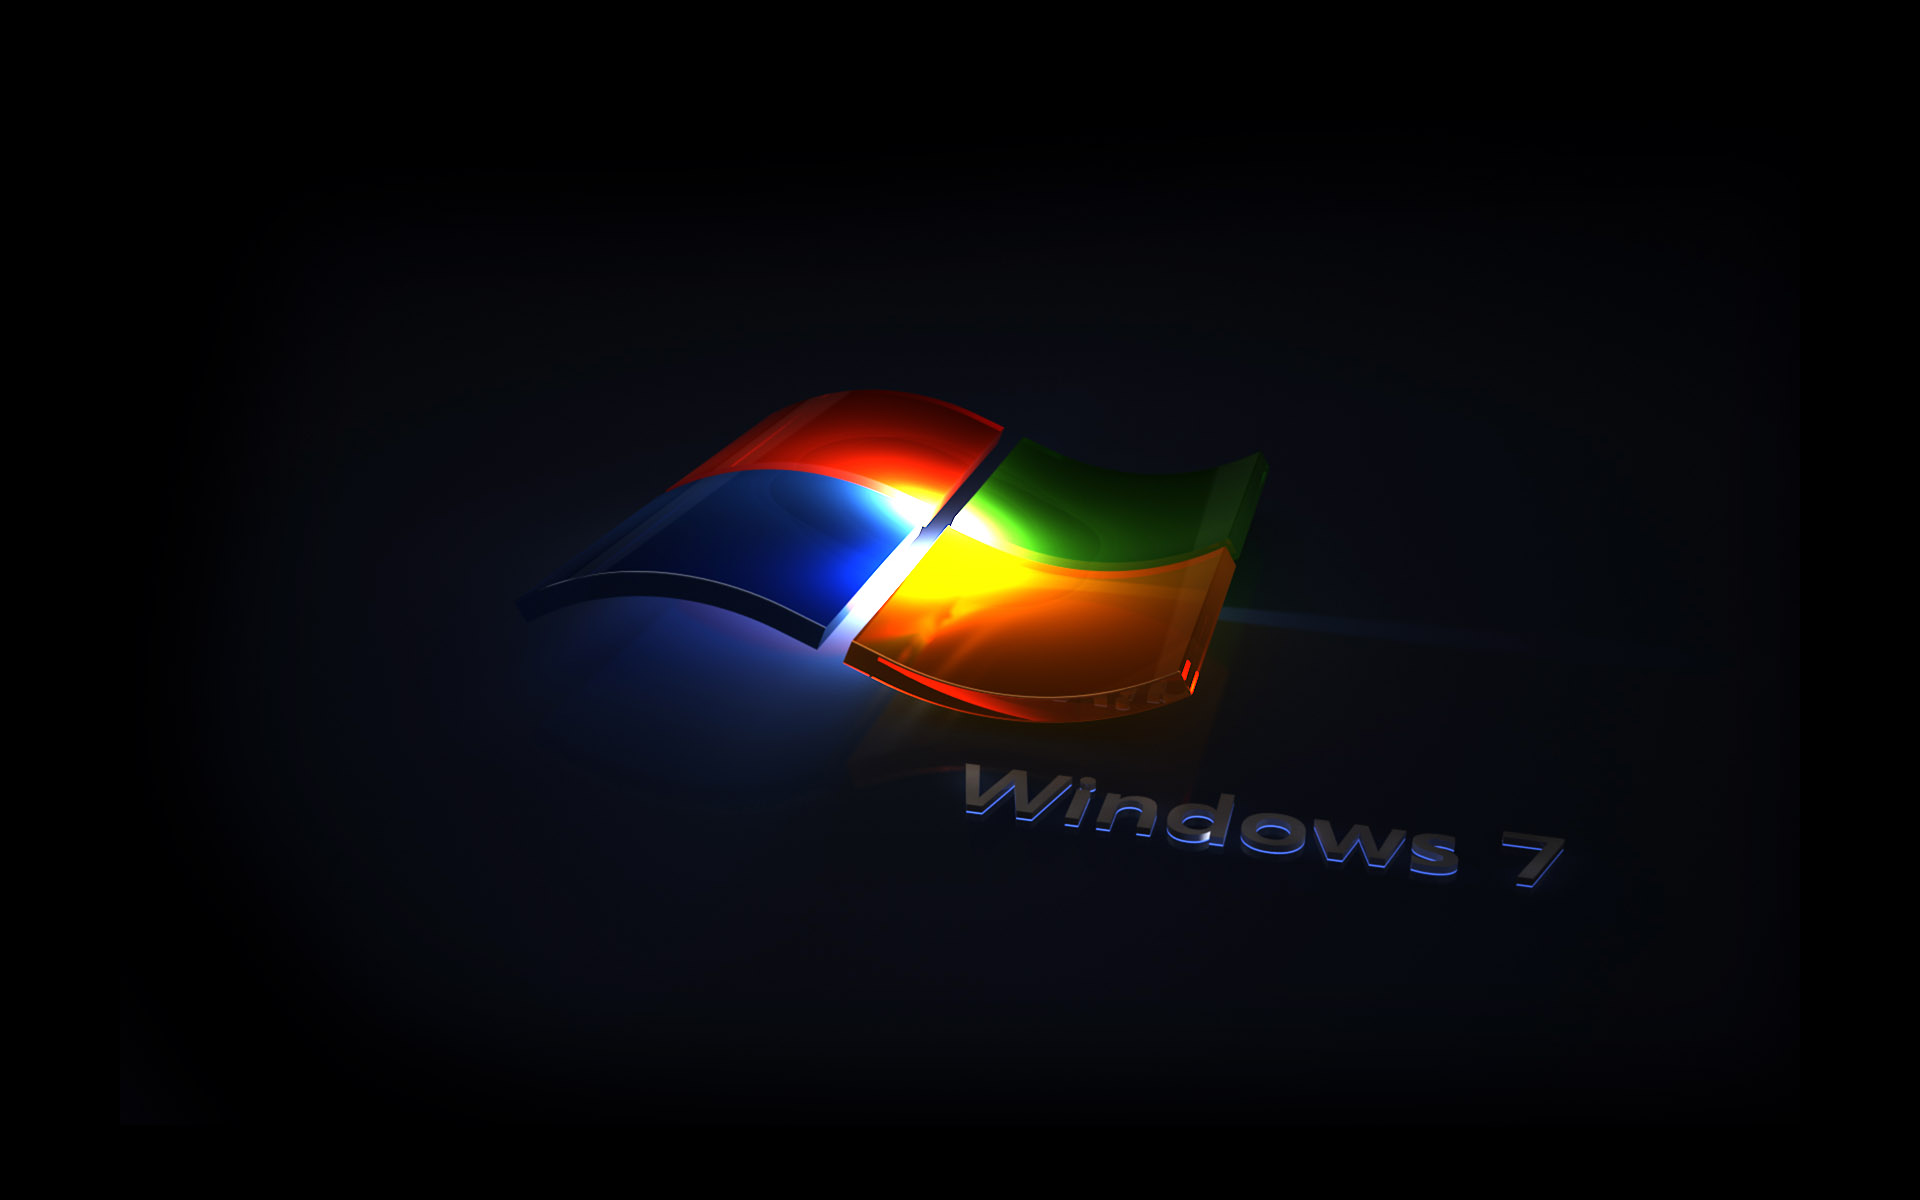 laptop wallpapers hd for windows 7,light,logo,graphics,font,operating system